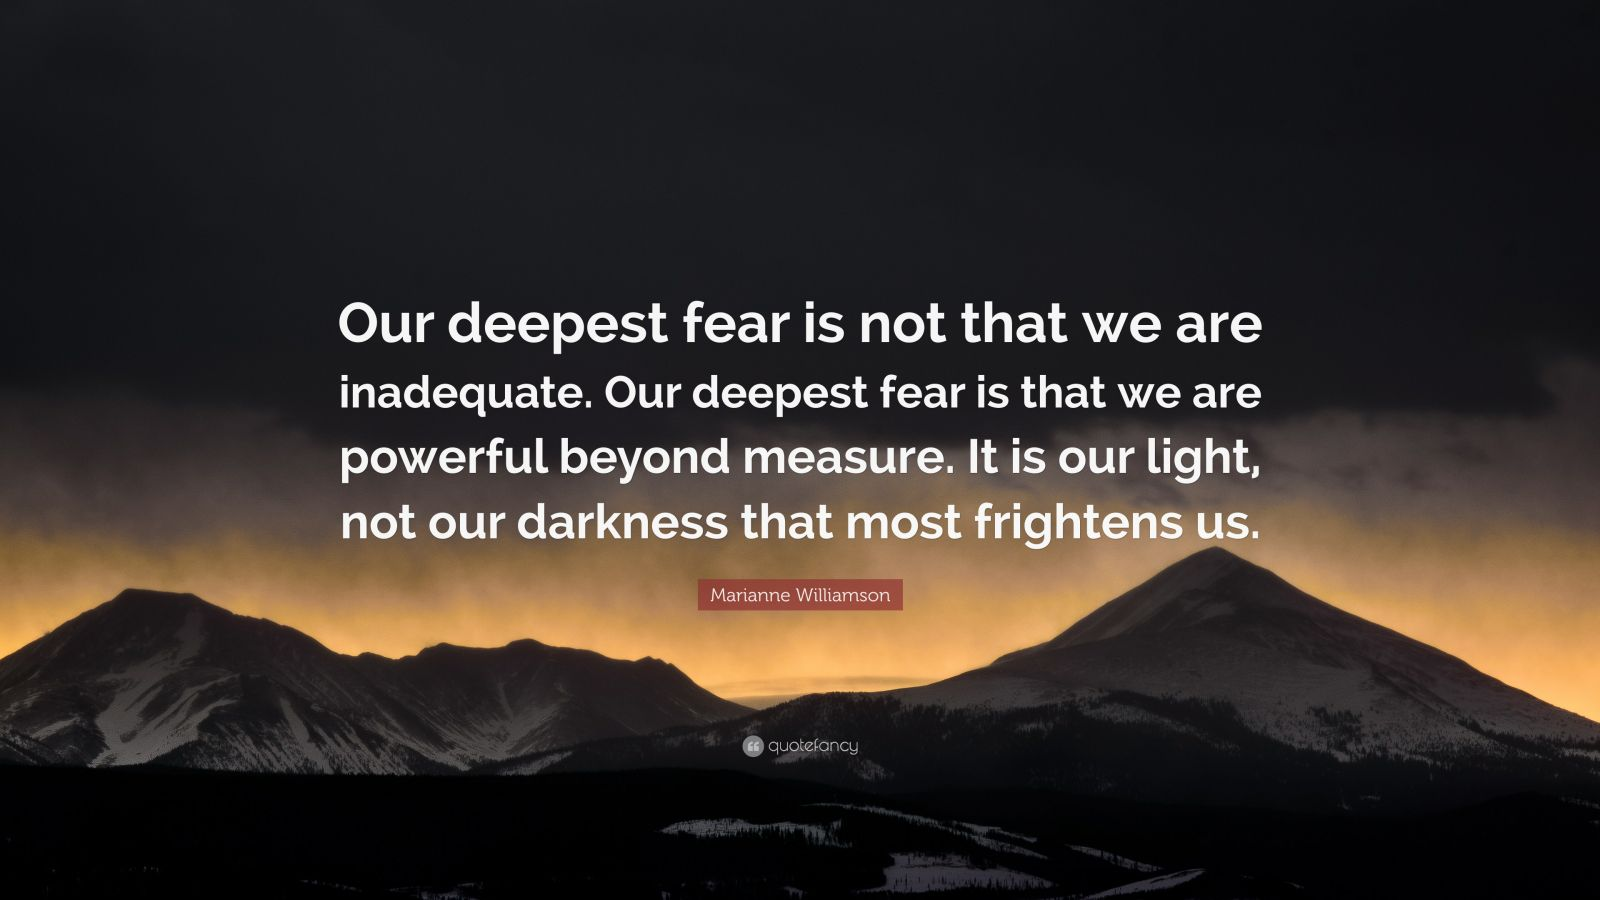 "Marianne Williamson Quote: ""Our deepest fear is not that we are inadequate. Our deepest fear is that we are powerful beyond measure. It is our light, not our darkness that most frightens us."""